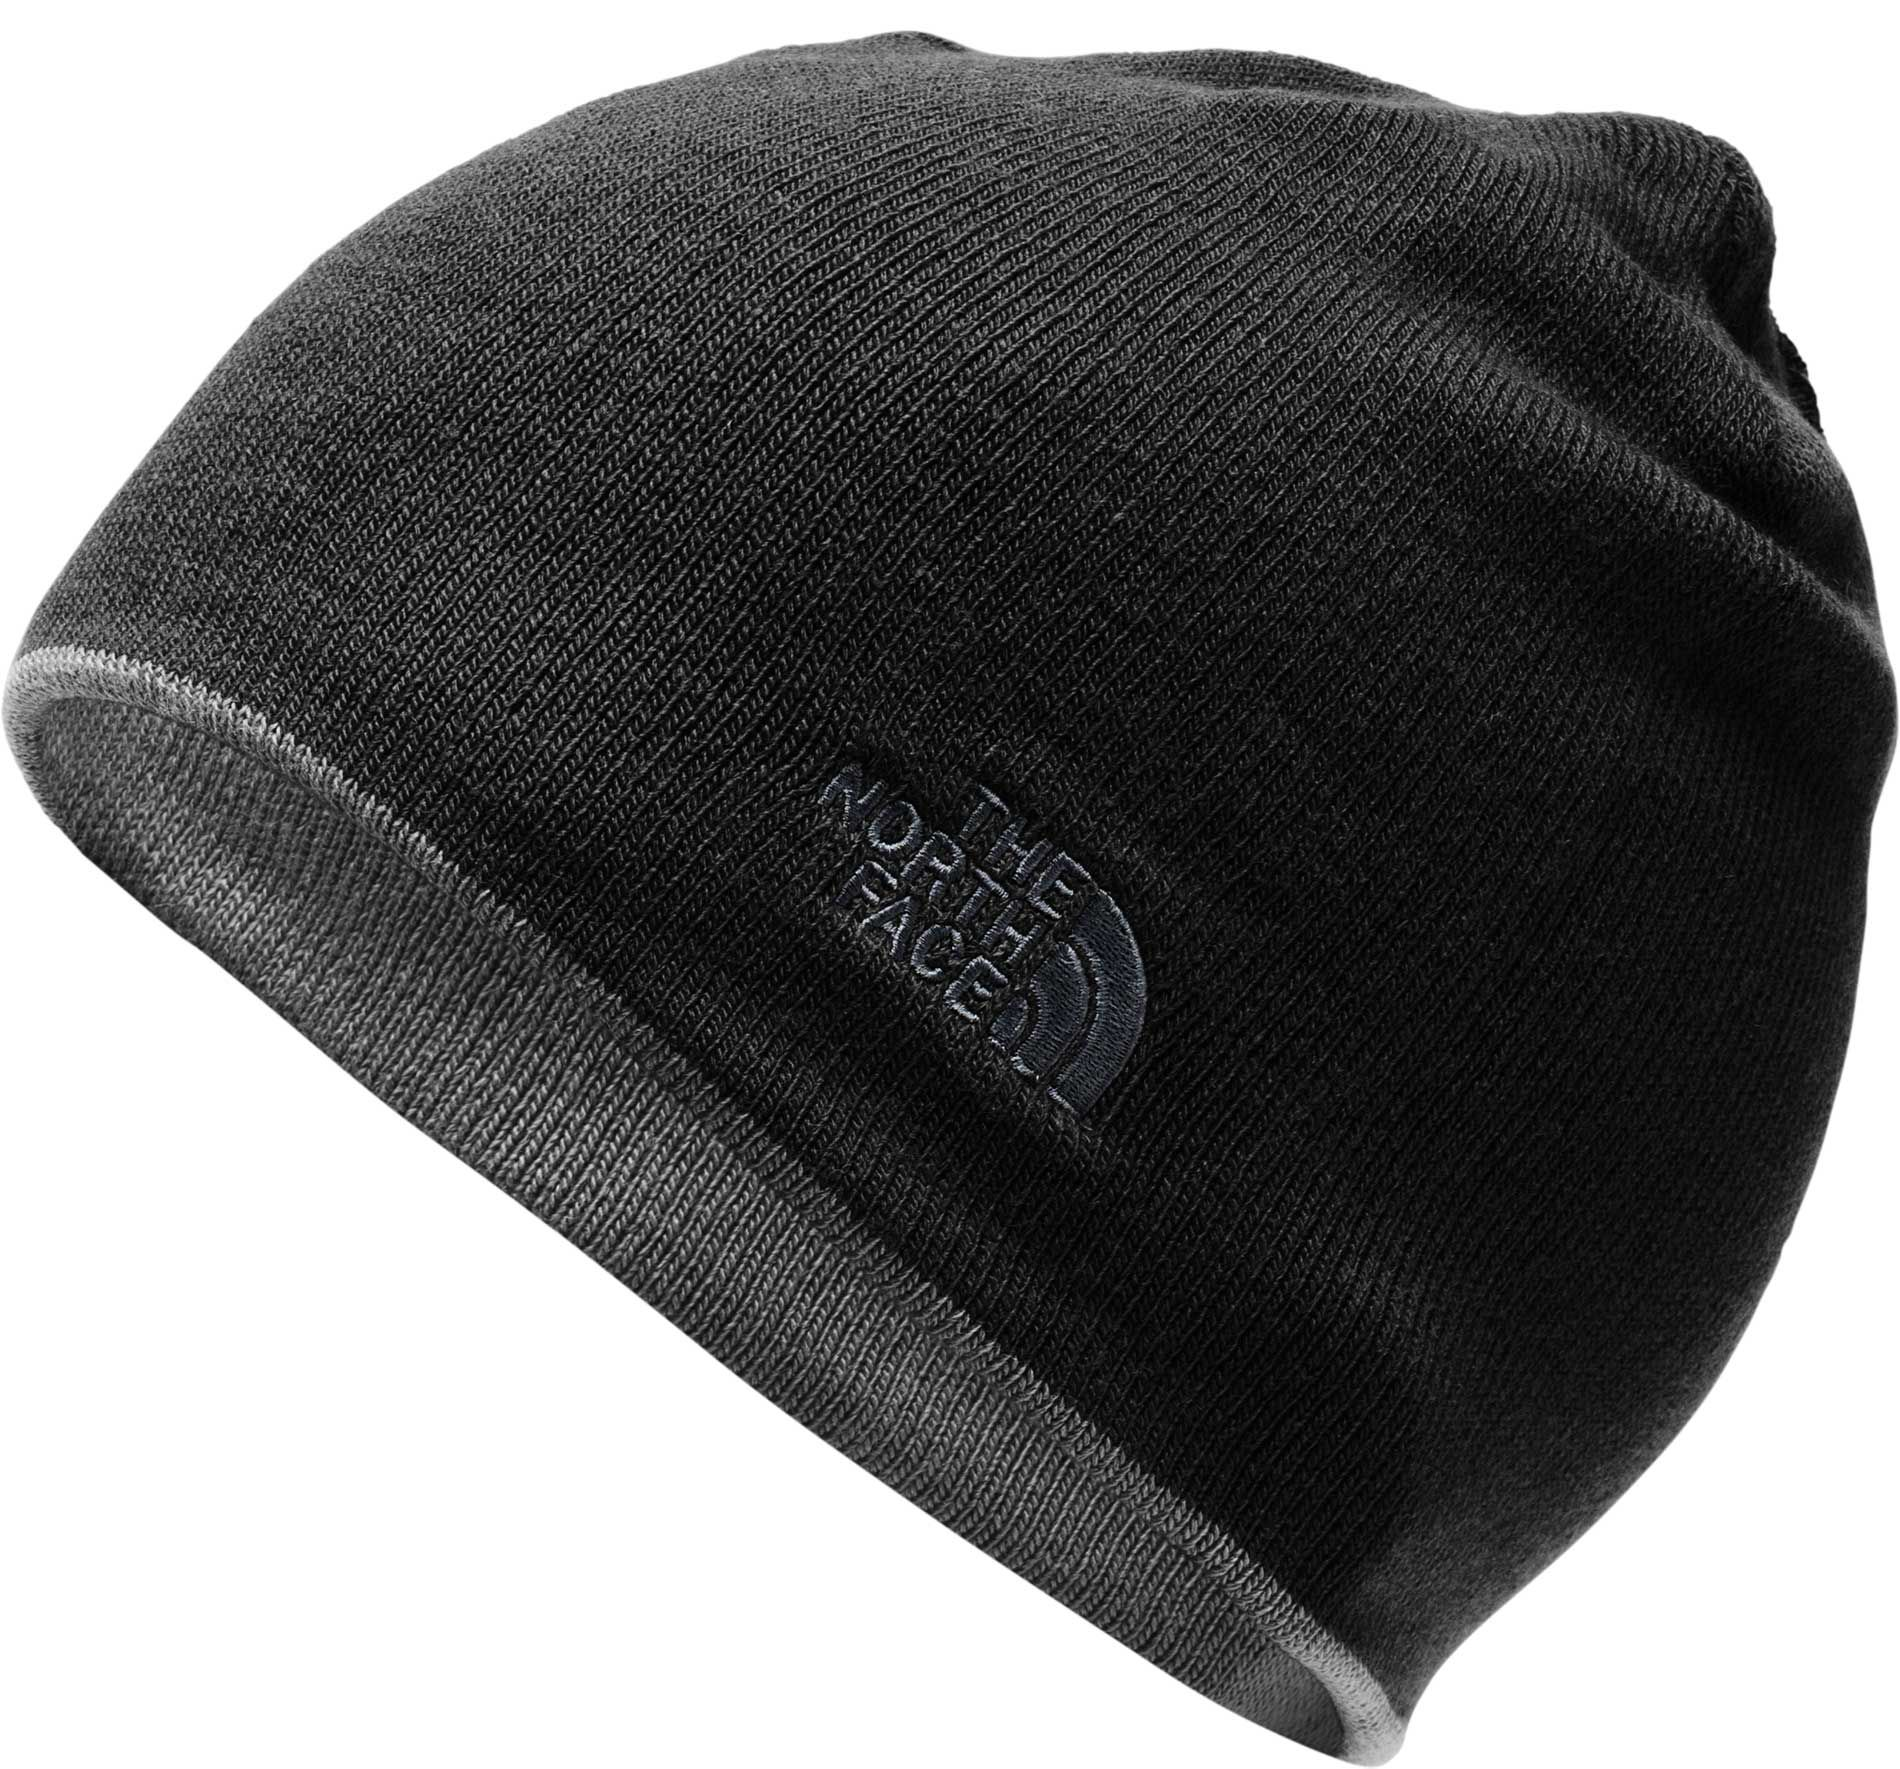 25ff3d61e The North Face Men's Reversible TNF Banner Beanie